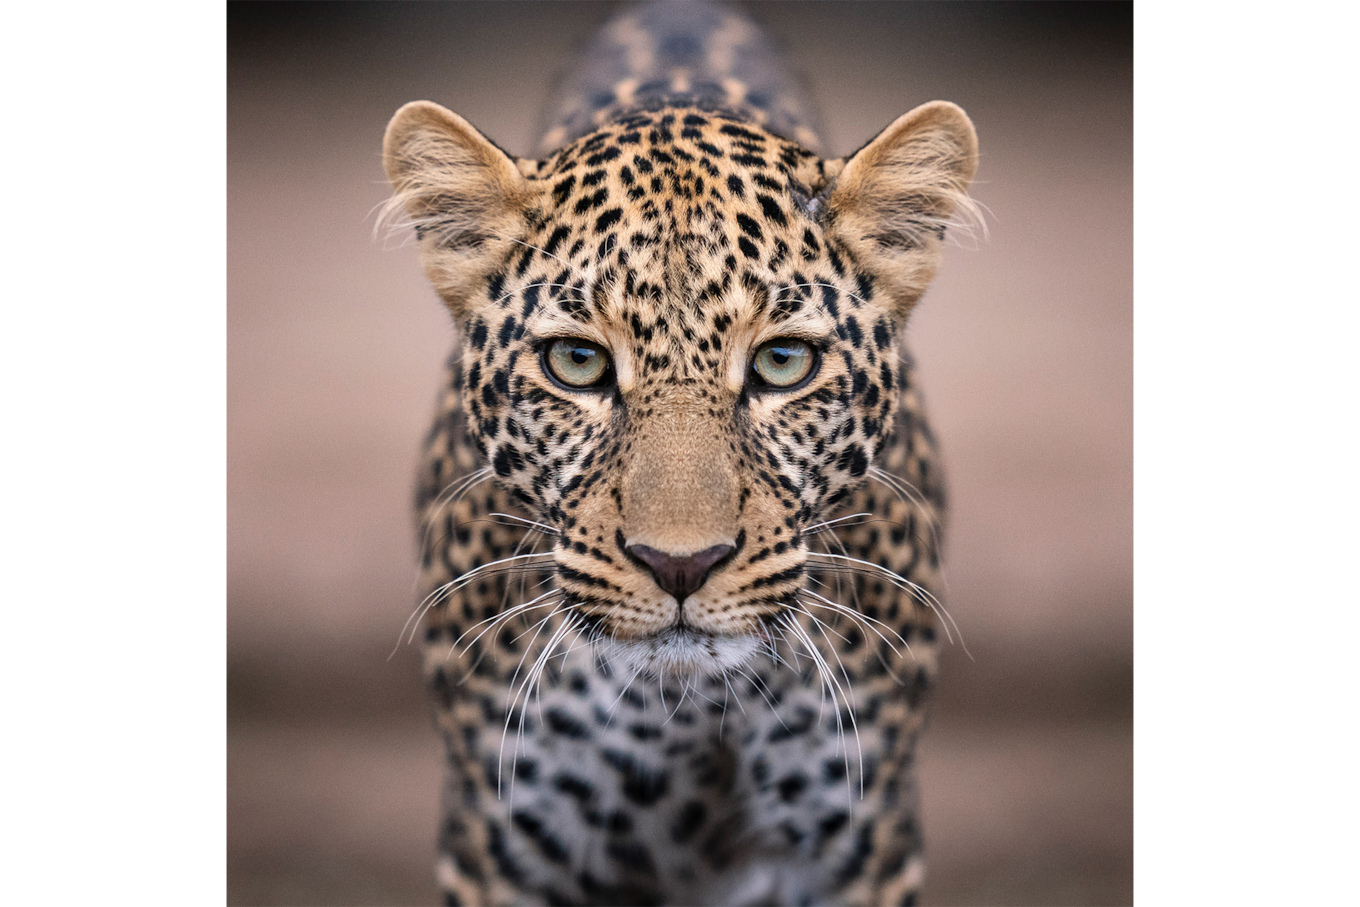 andreas hemb sony alpha 7r3 portrait of a leopard fixing the objective